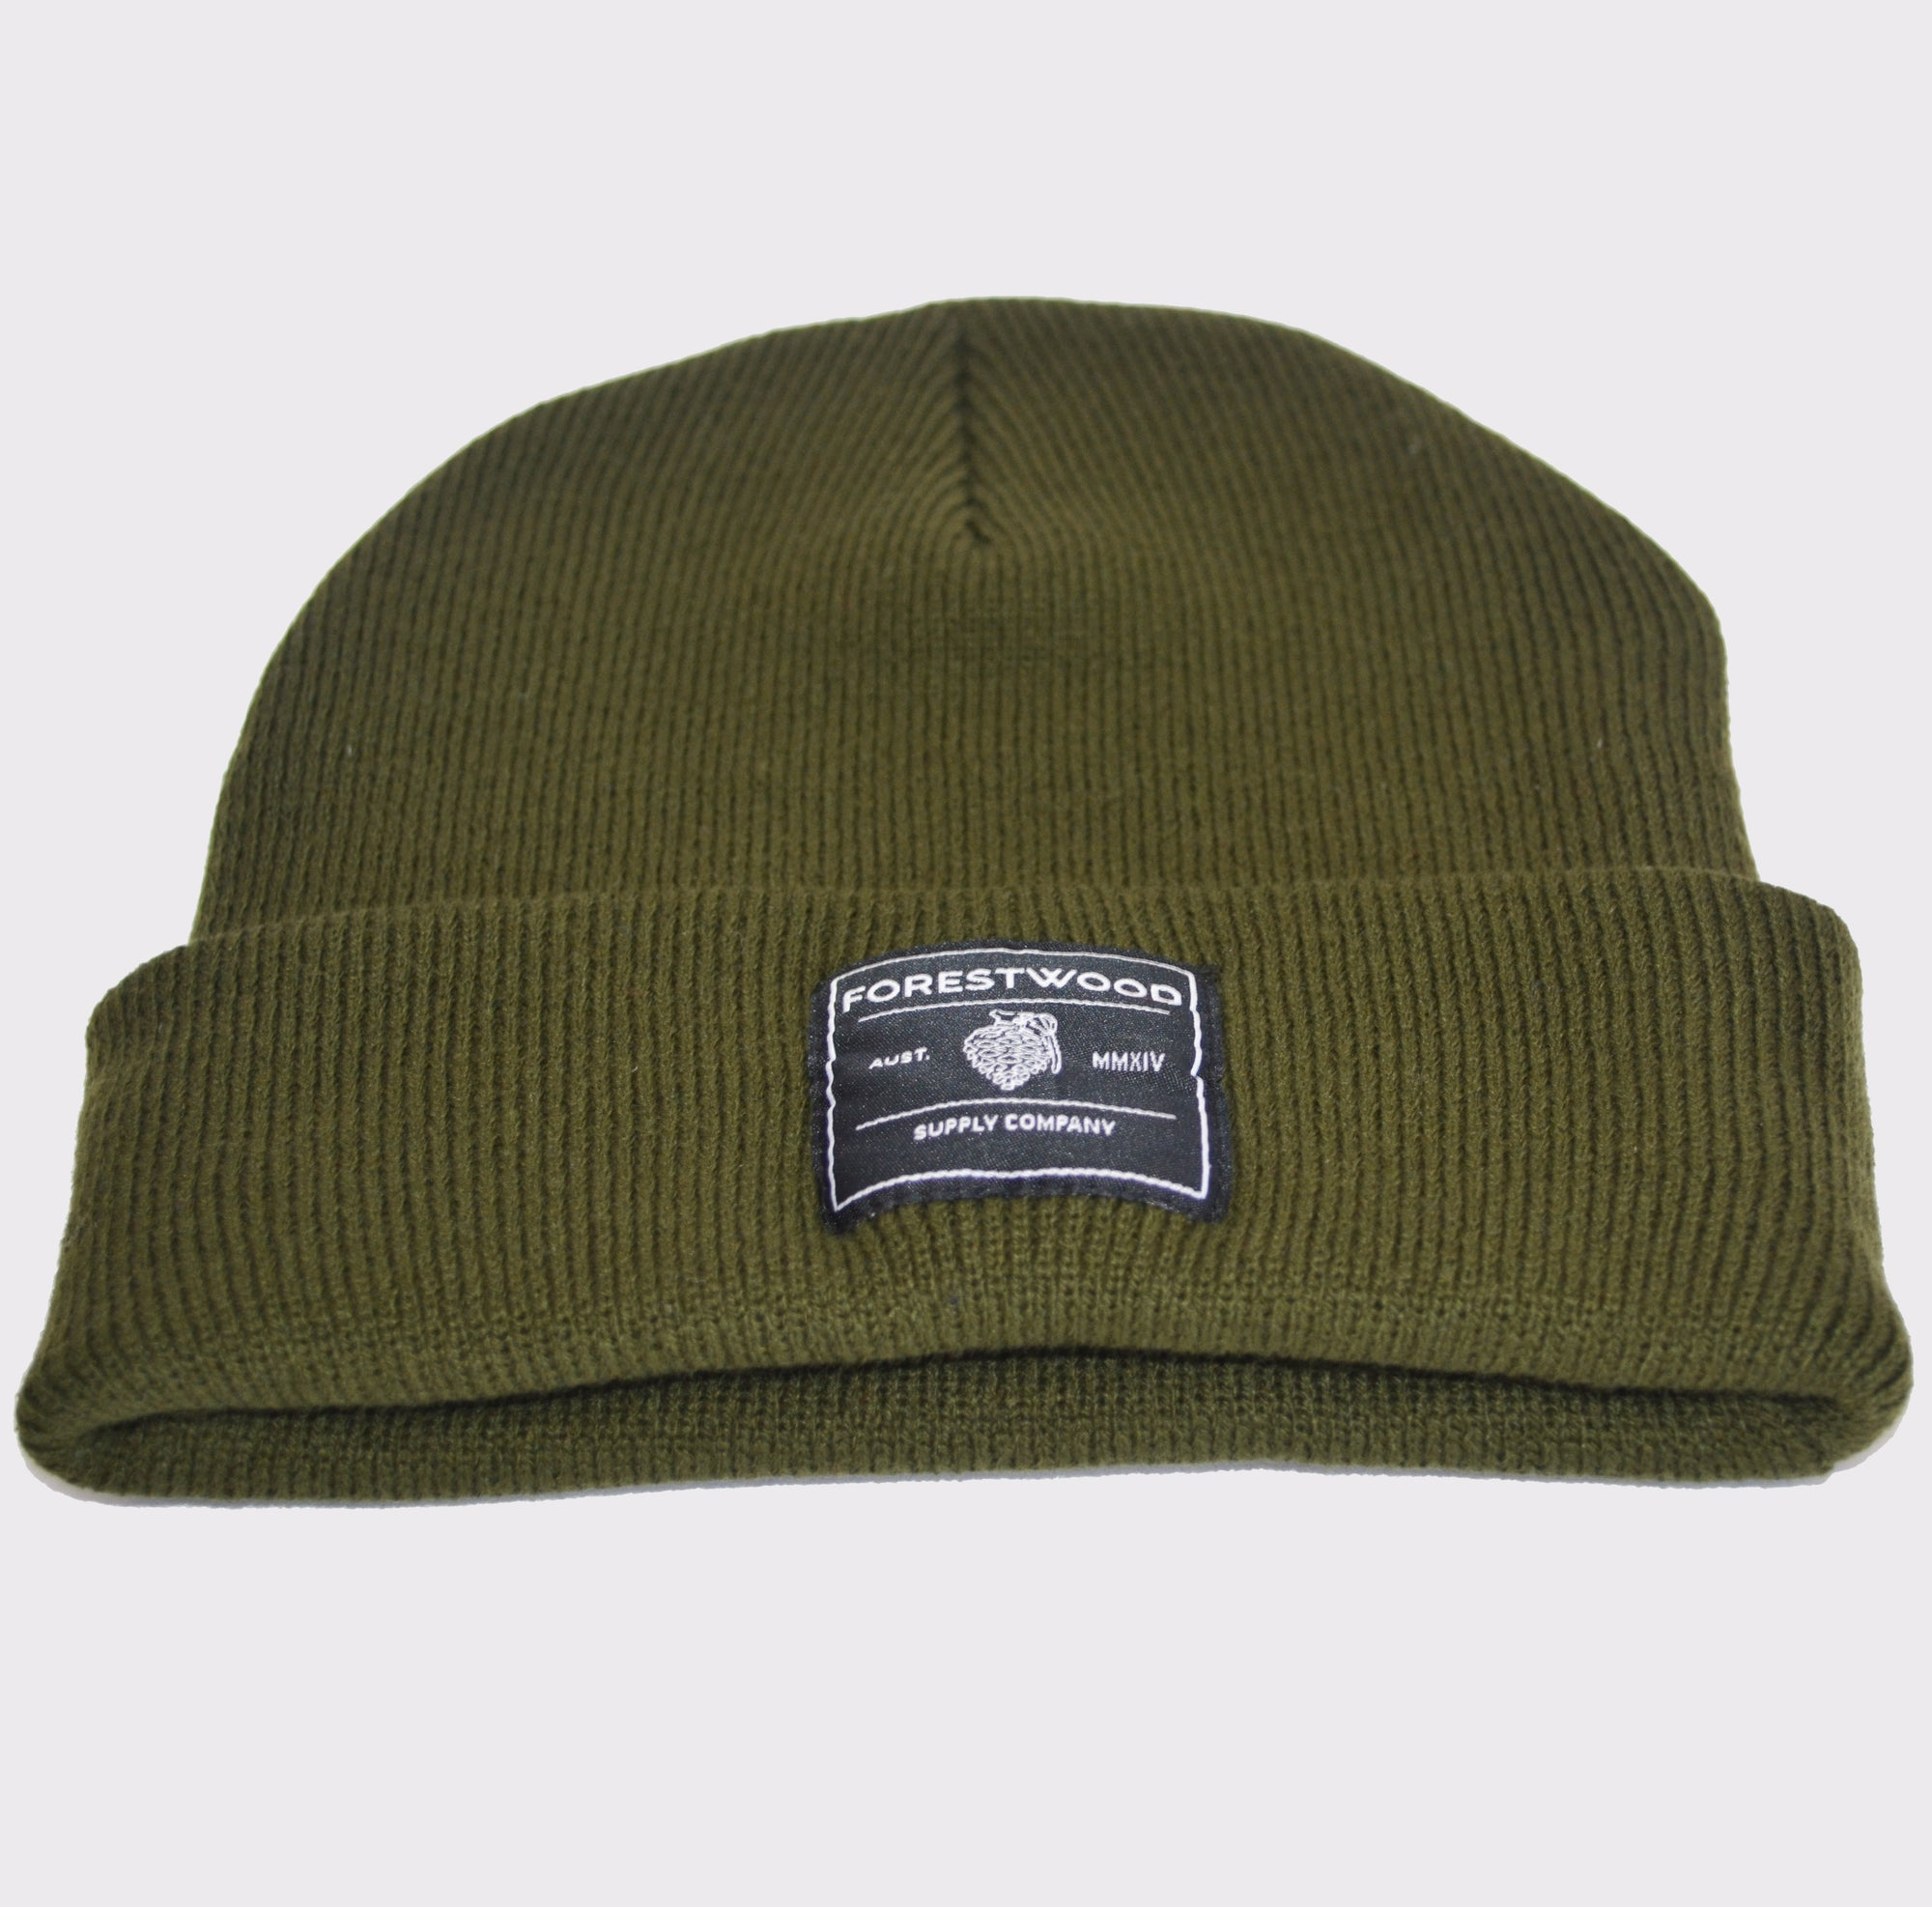 Forestwood Beanie - Green - Forestwood Co